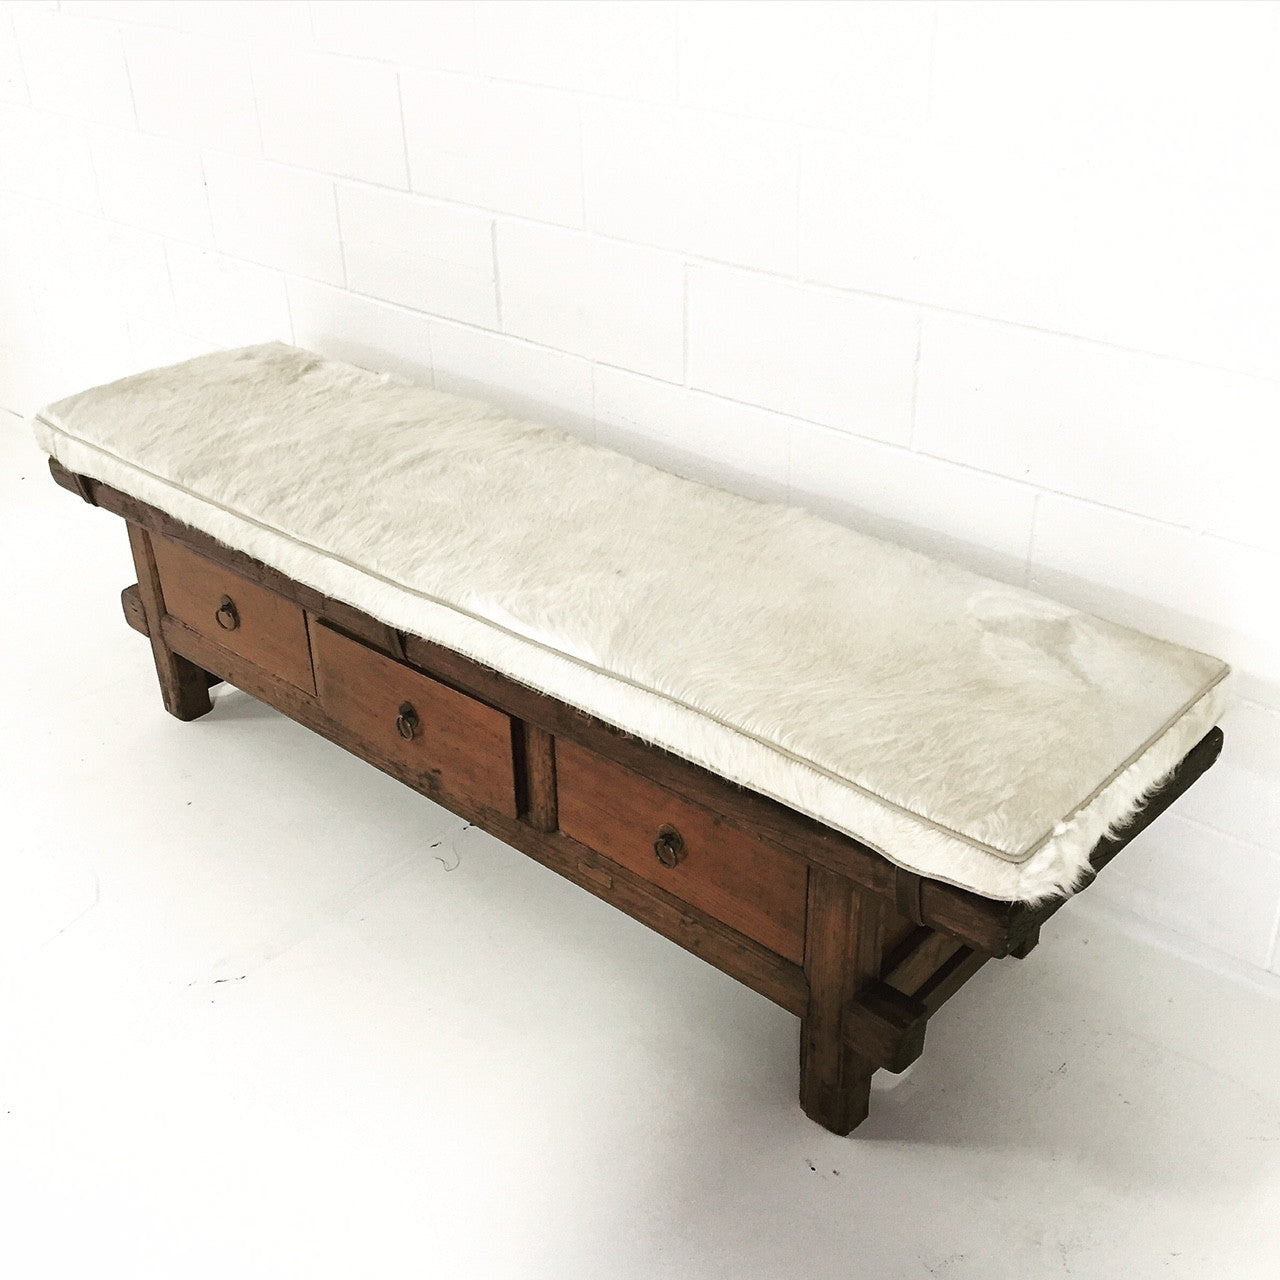 Bench with Brazilian Cowhide Cushion - FORSYTH